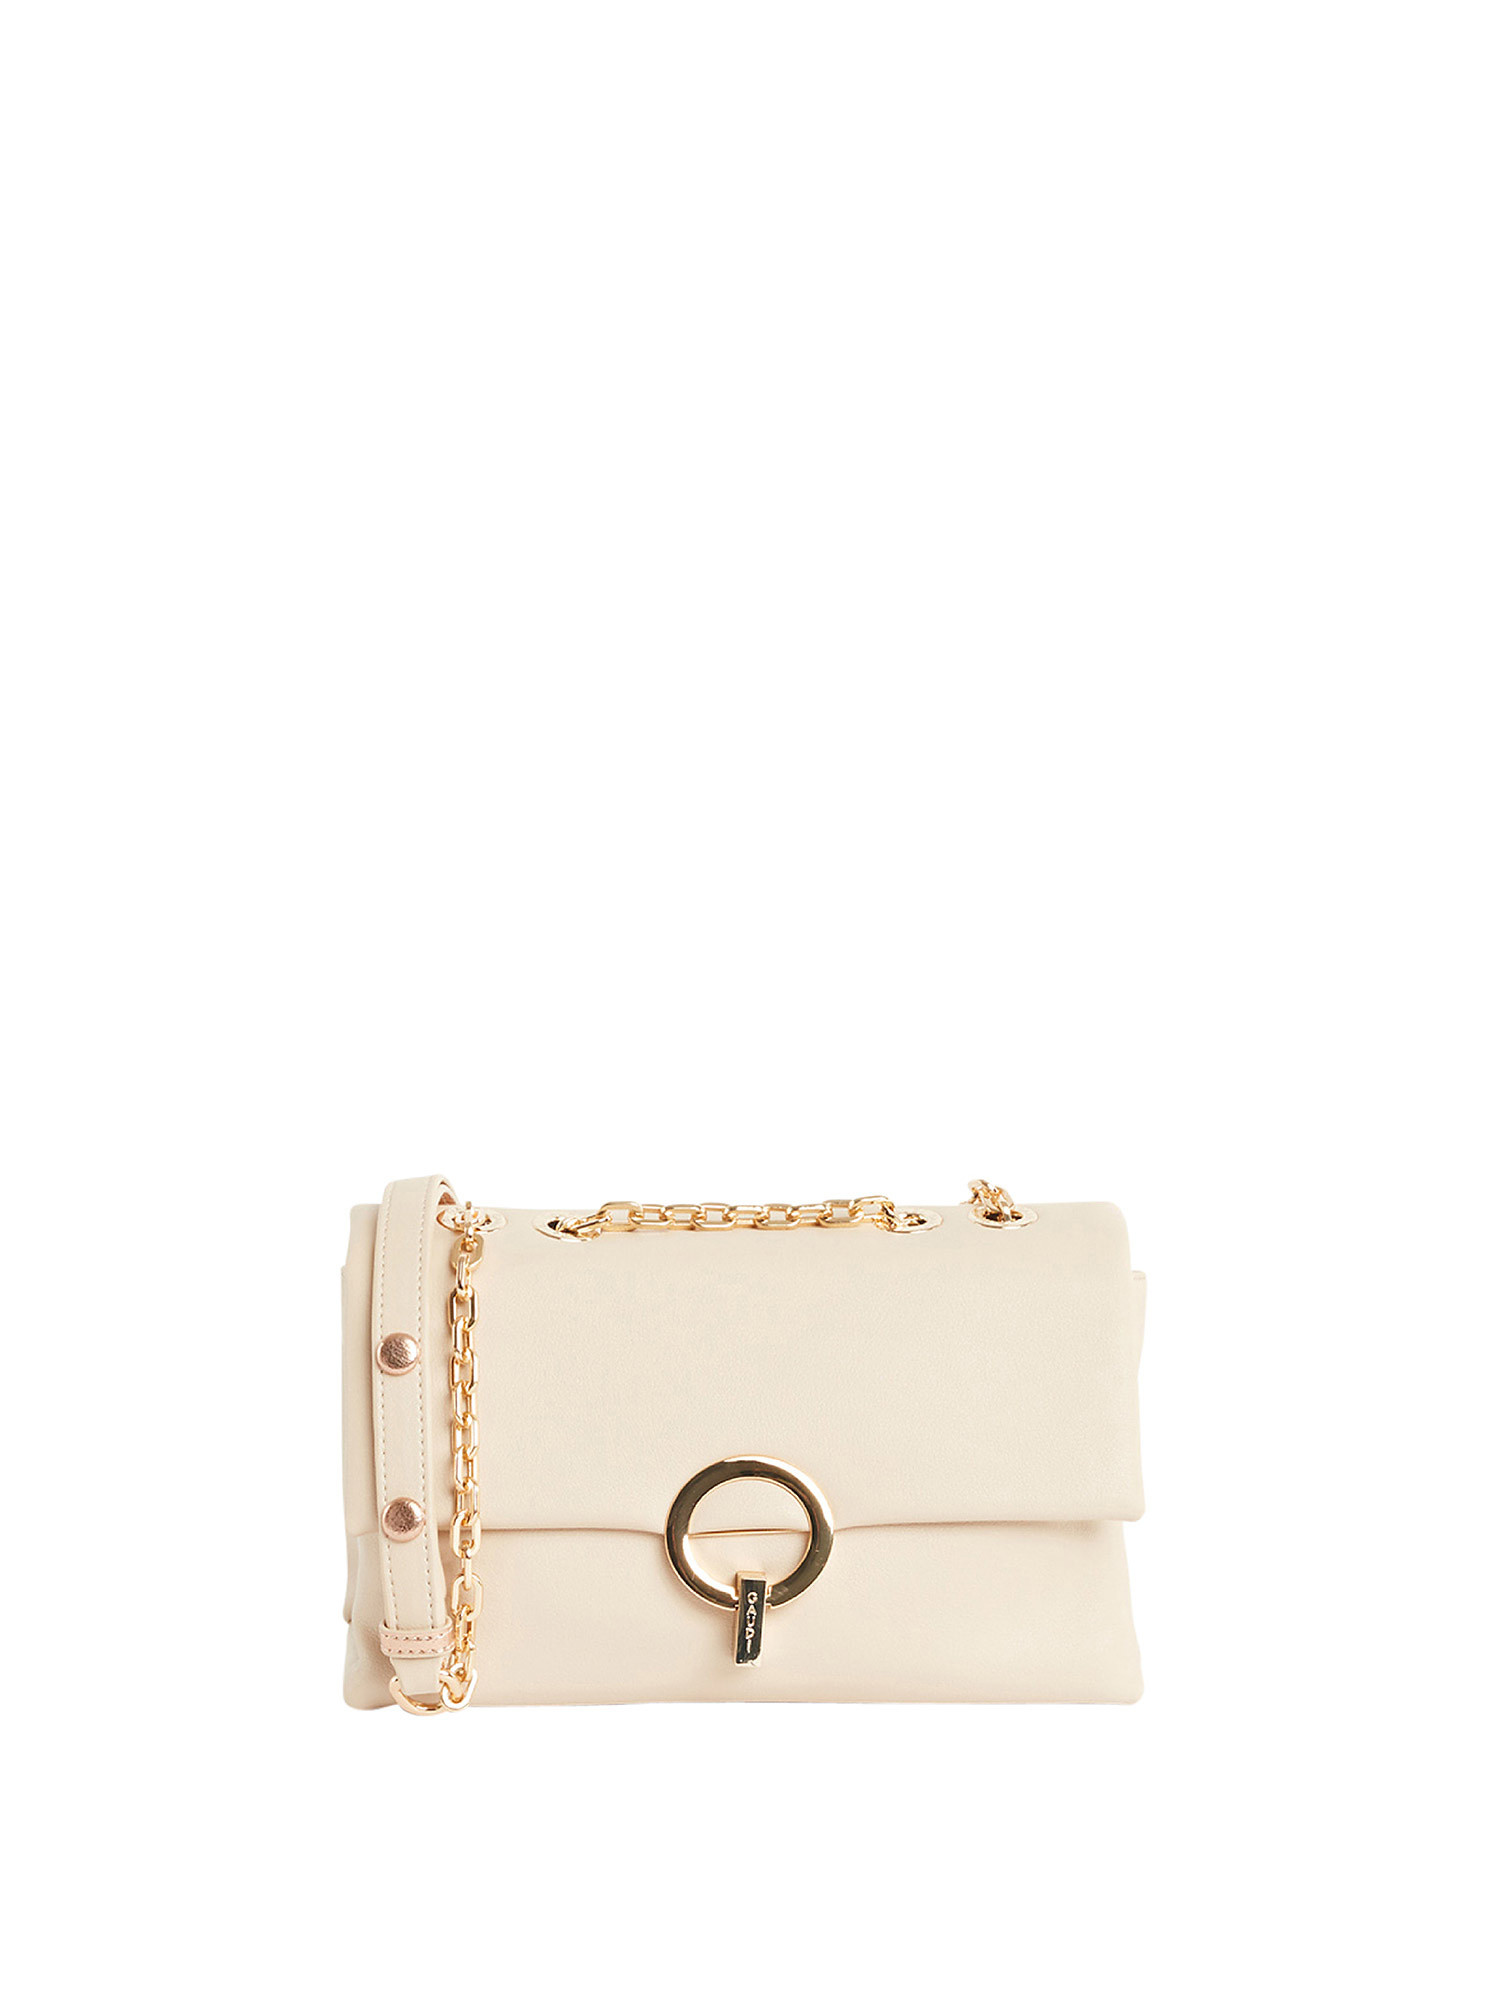 Borsa a tracolla in ecopelle, Beige, large image number 0